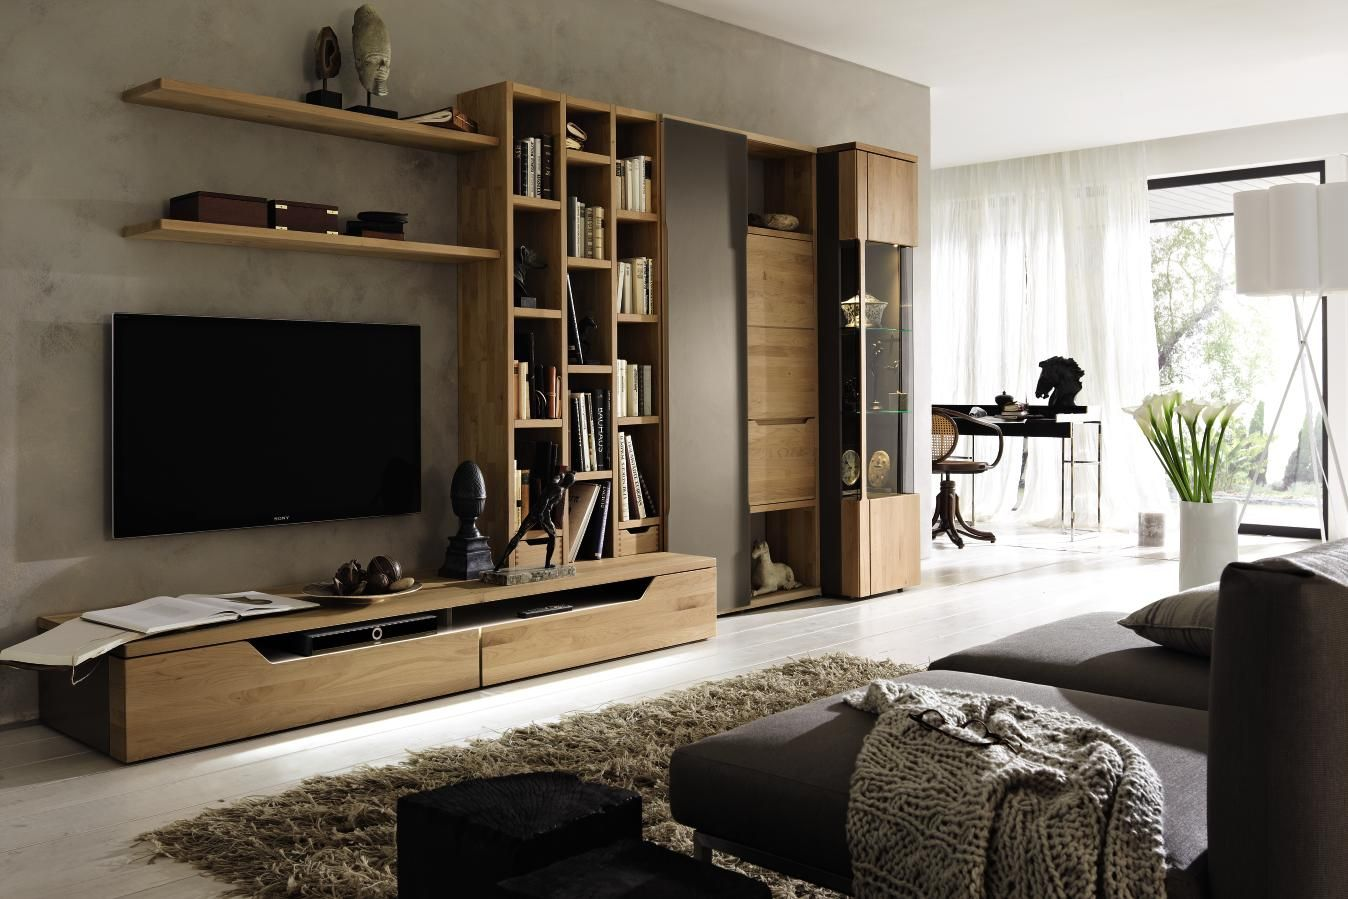 s jour carva h lsta laqu cacao aulne massif ch ne nature massif meuble tv biblioth que bahut. Black Bedroom Furniture Sets. Home Design Ideas